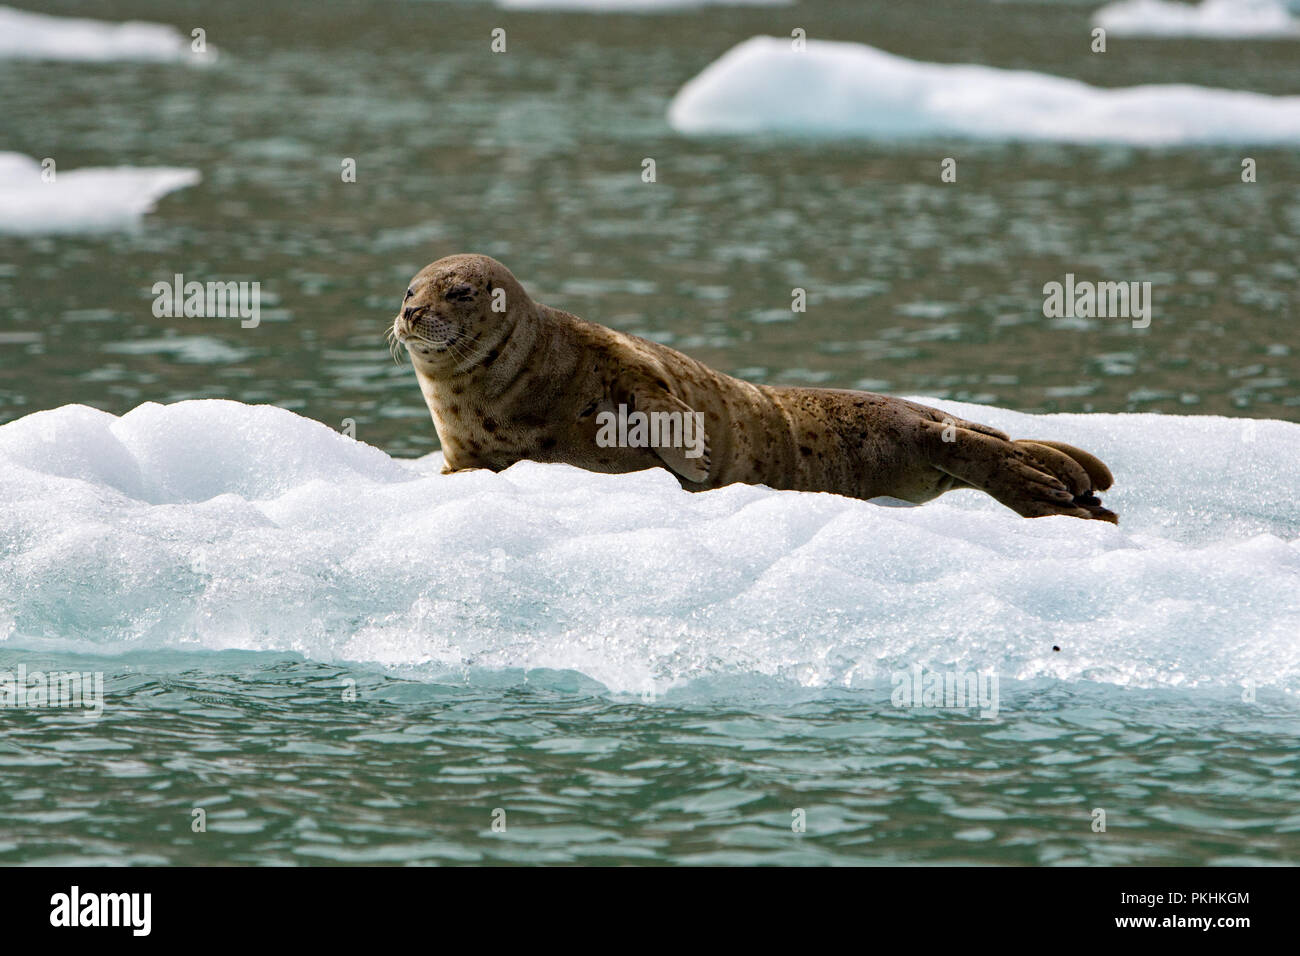 Harbor seals shelter on ice to help escape predation, to